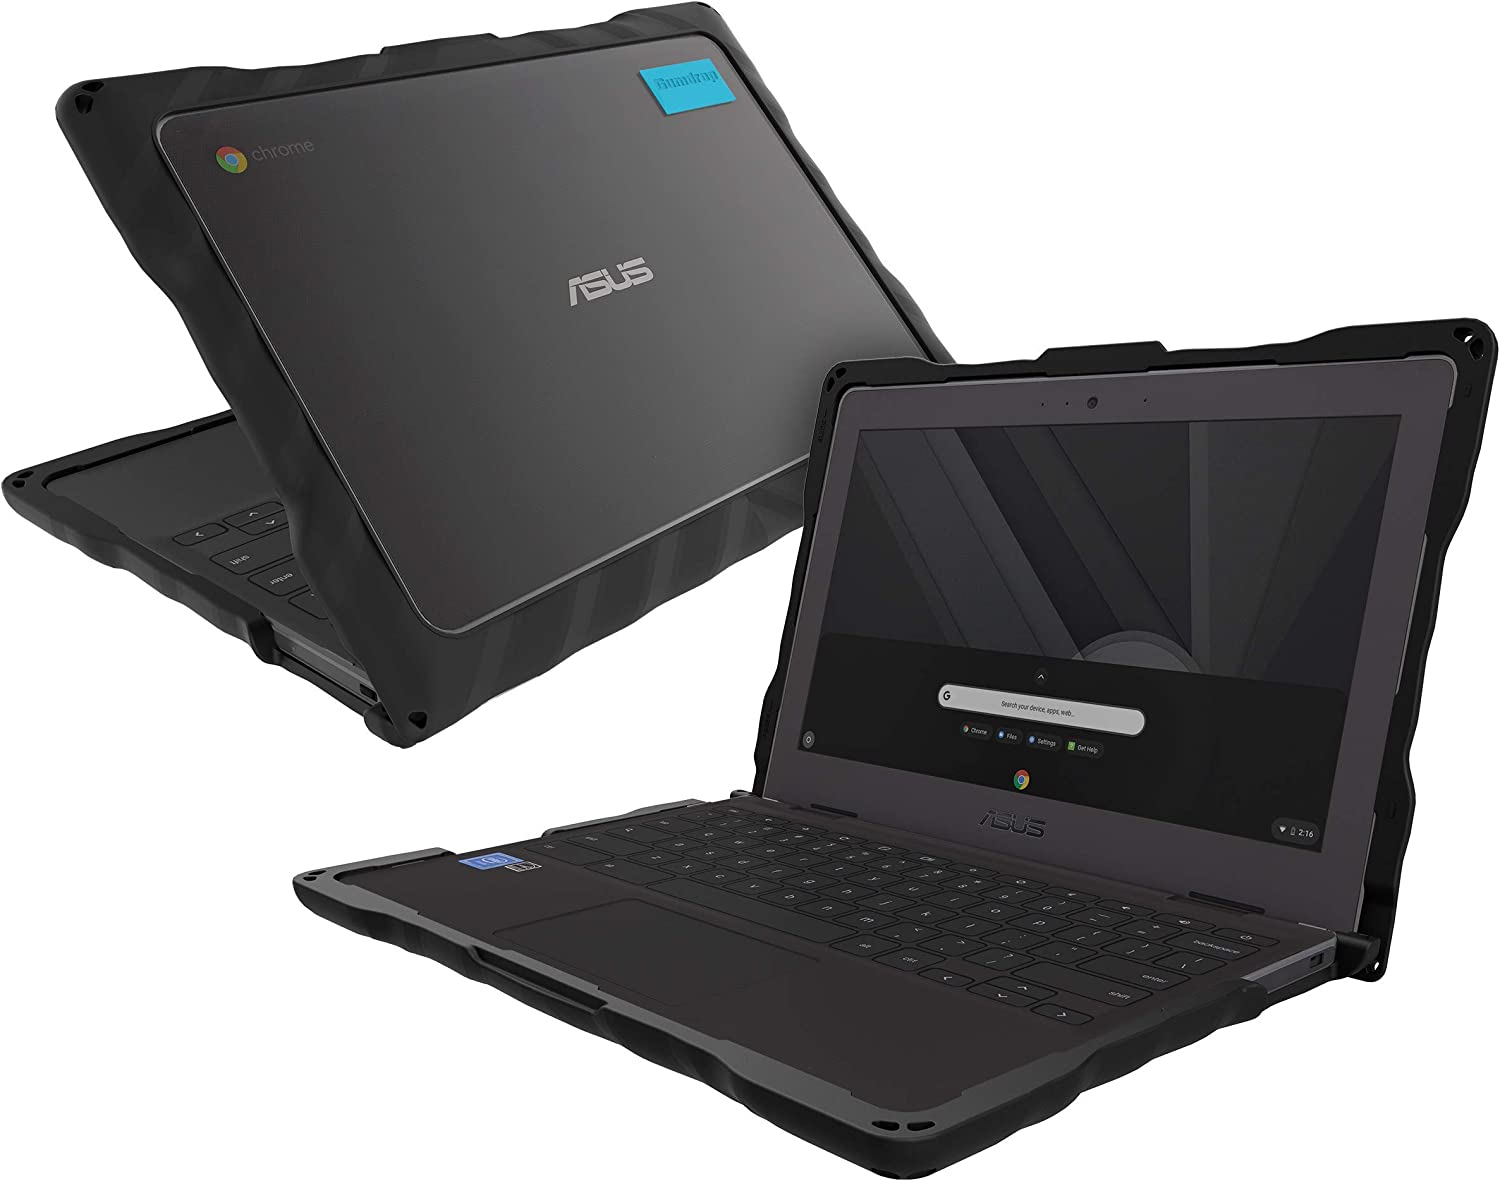 GumDrop DropTech Case Designed for ASUS Chromebook C204 EE Laptop - Black, Rugged, School-Ready, Shock Absorbing, Extreme Drop Protection